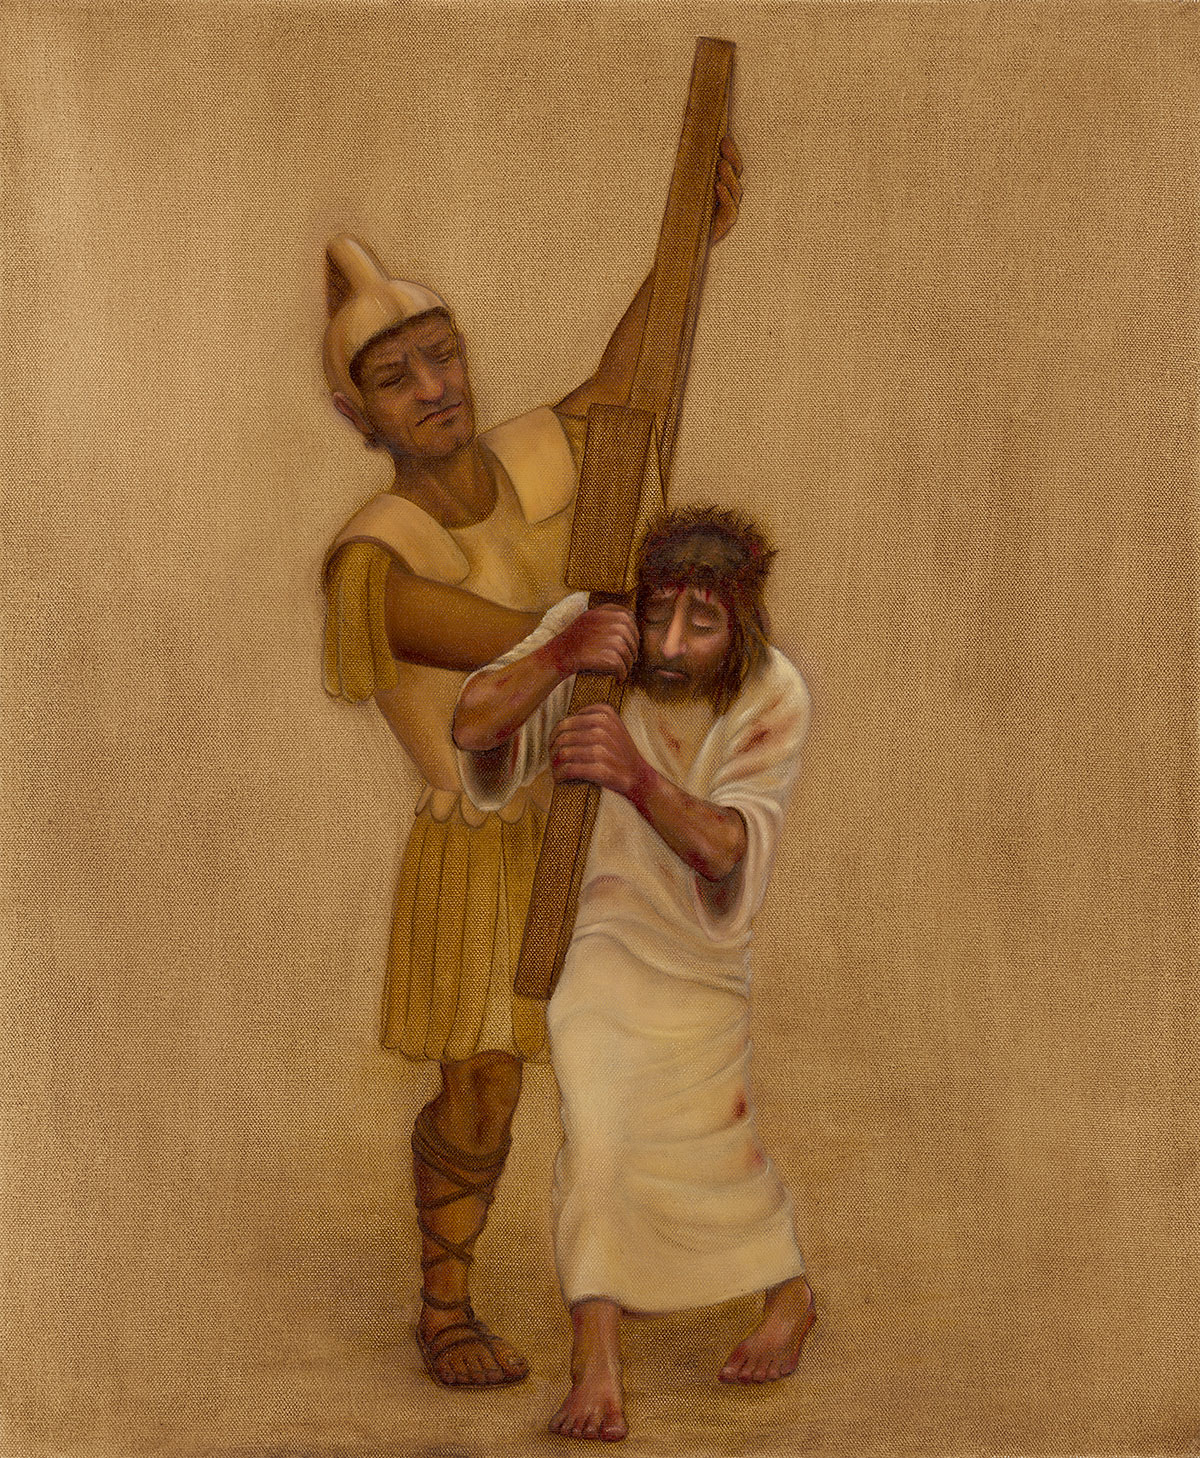 2 - Jesus carries the cross